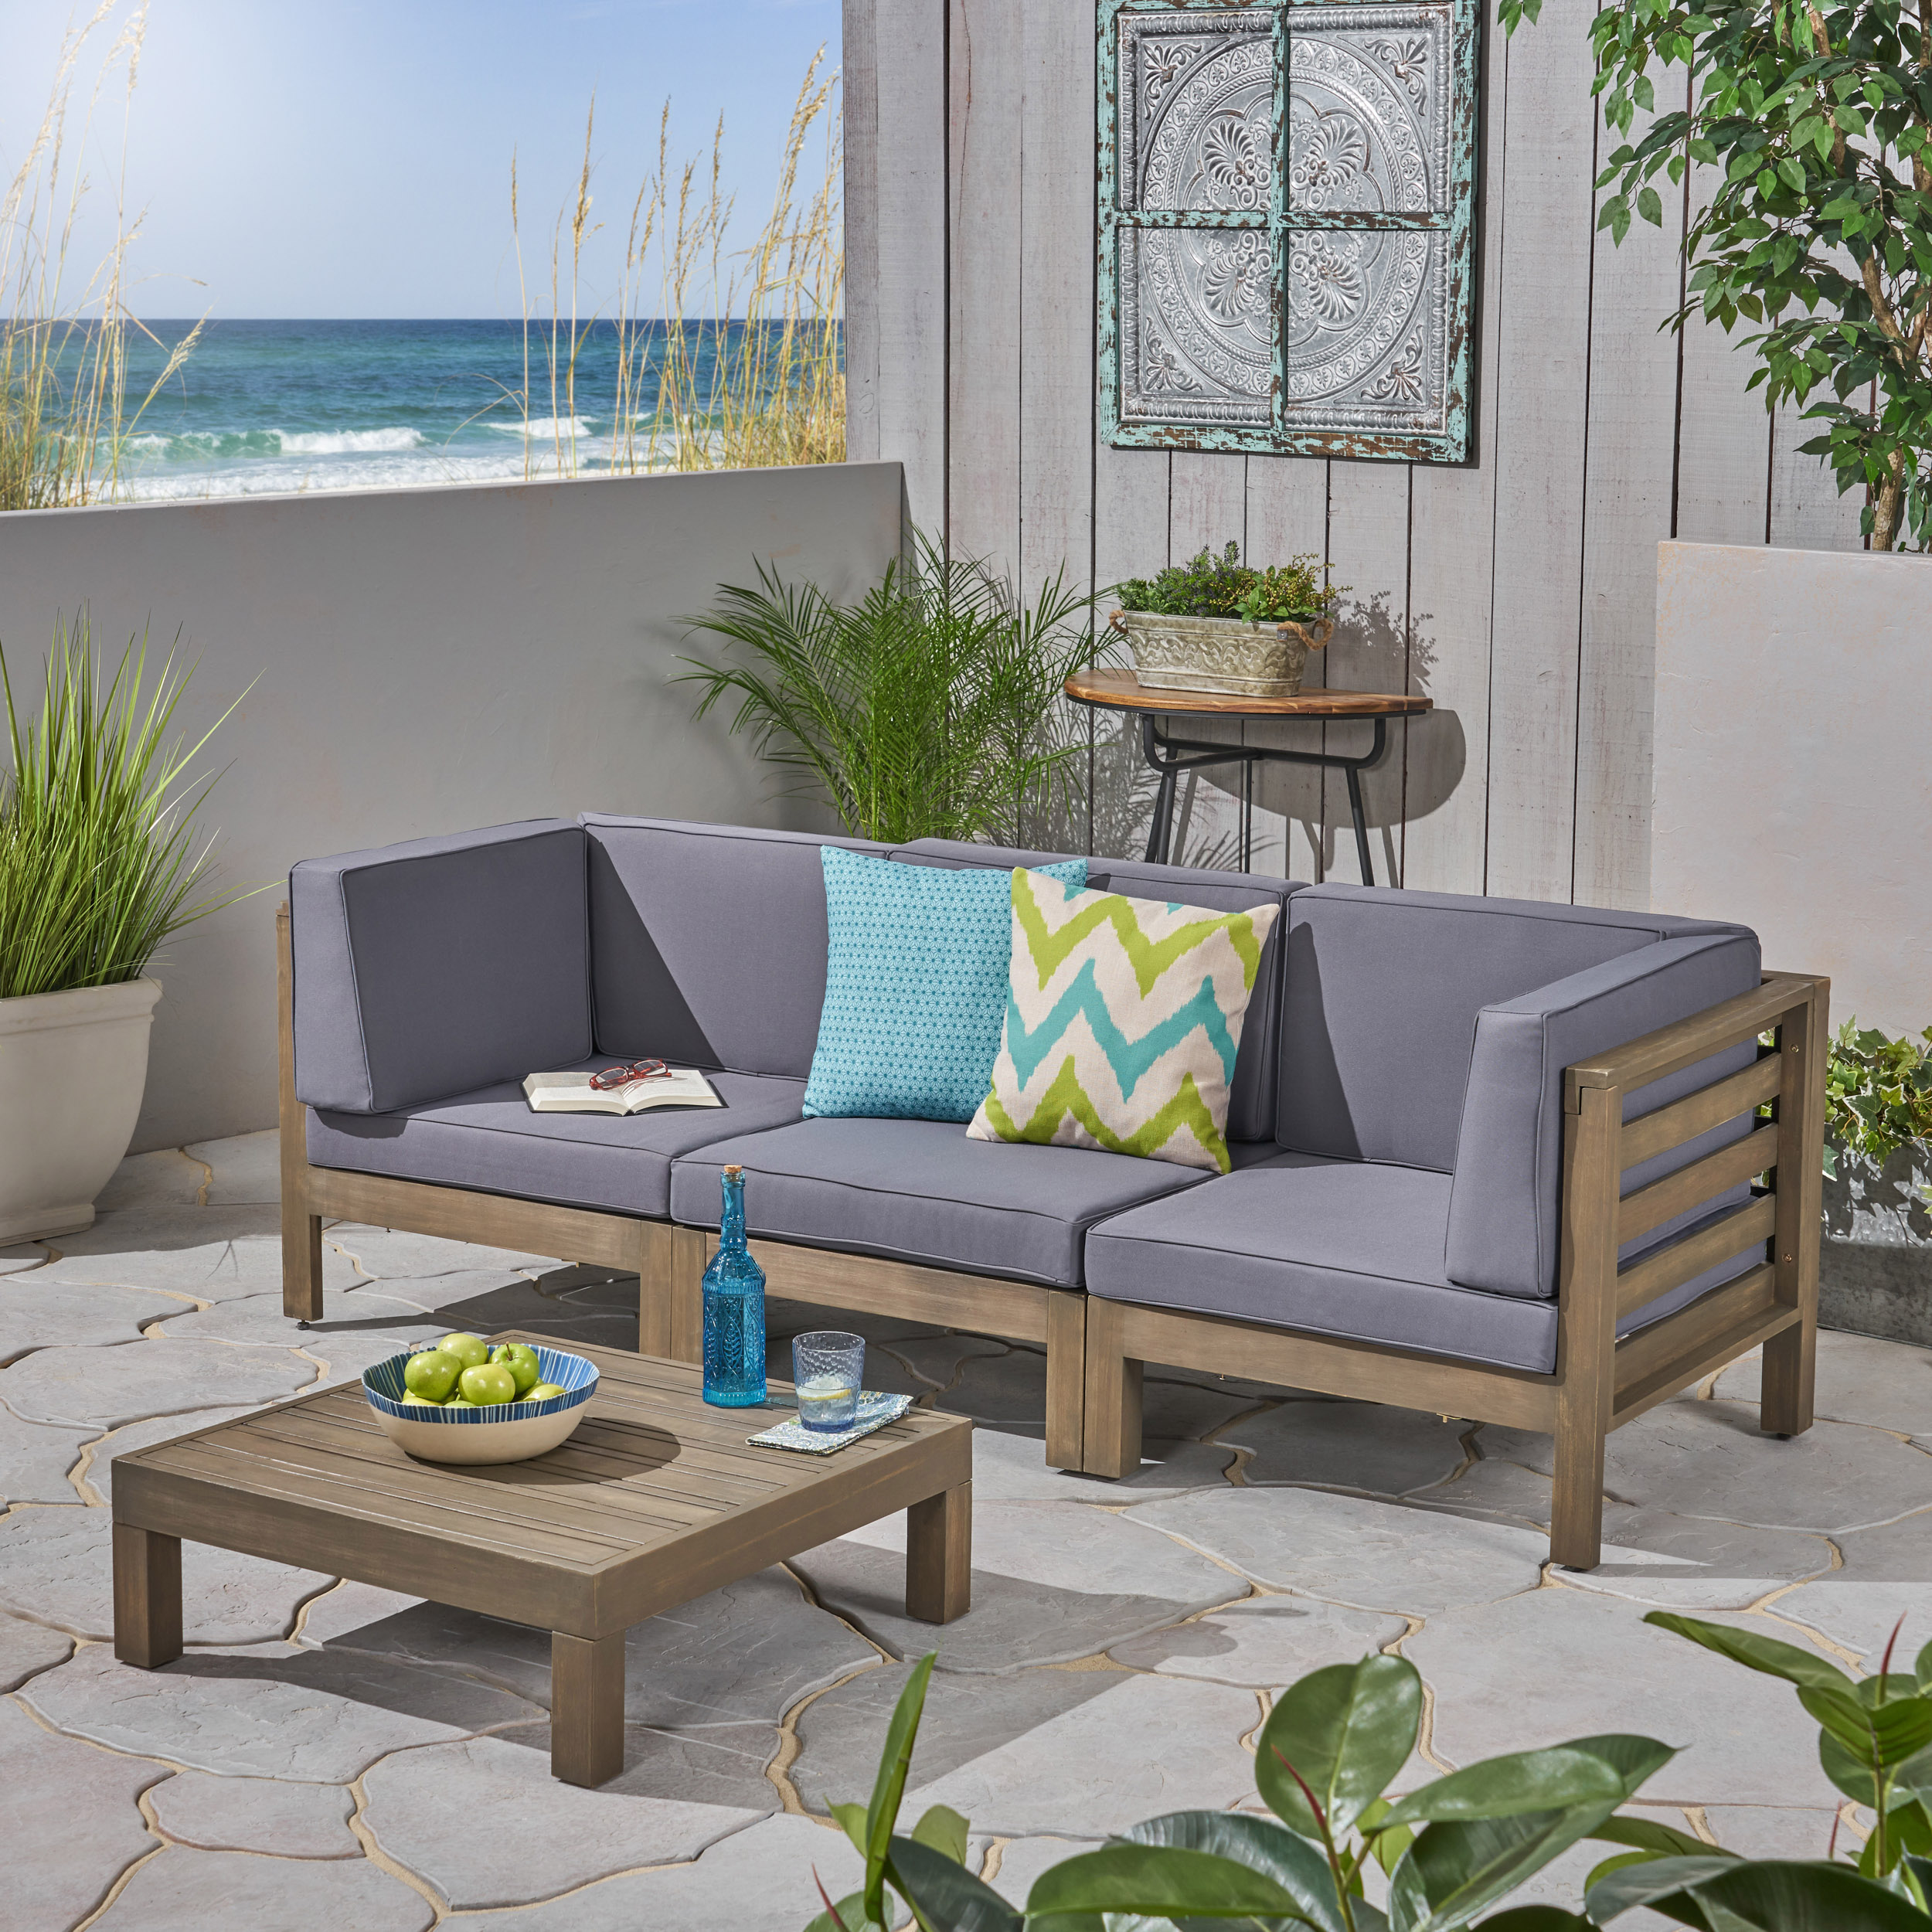 Frankie Outdoor Acacia Wood Sectional Sofa and Coffee Table Set with Cushions, Gray, Dark Gray